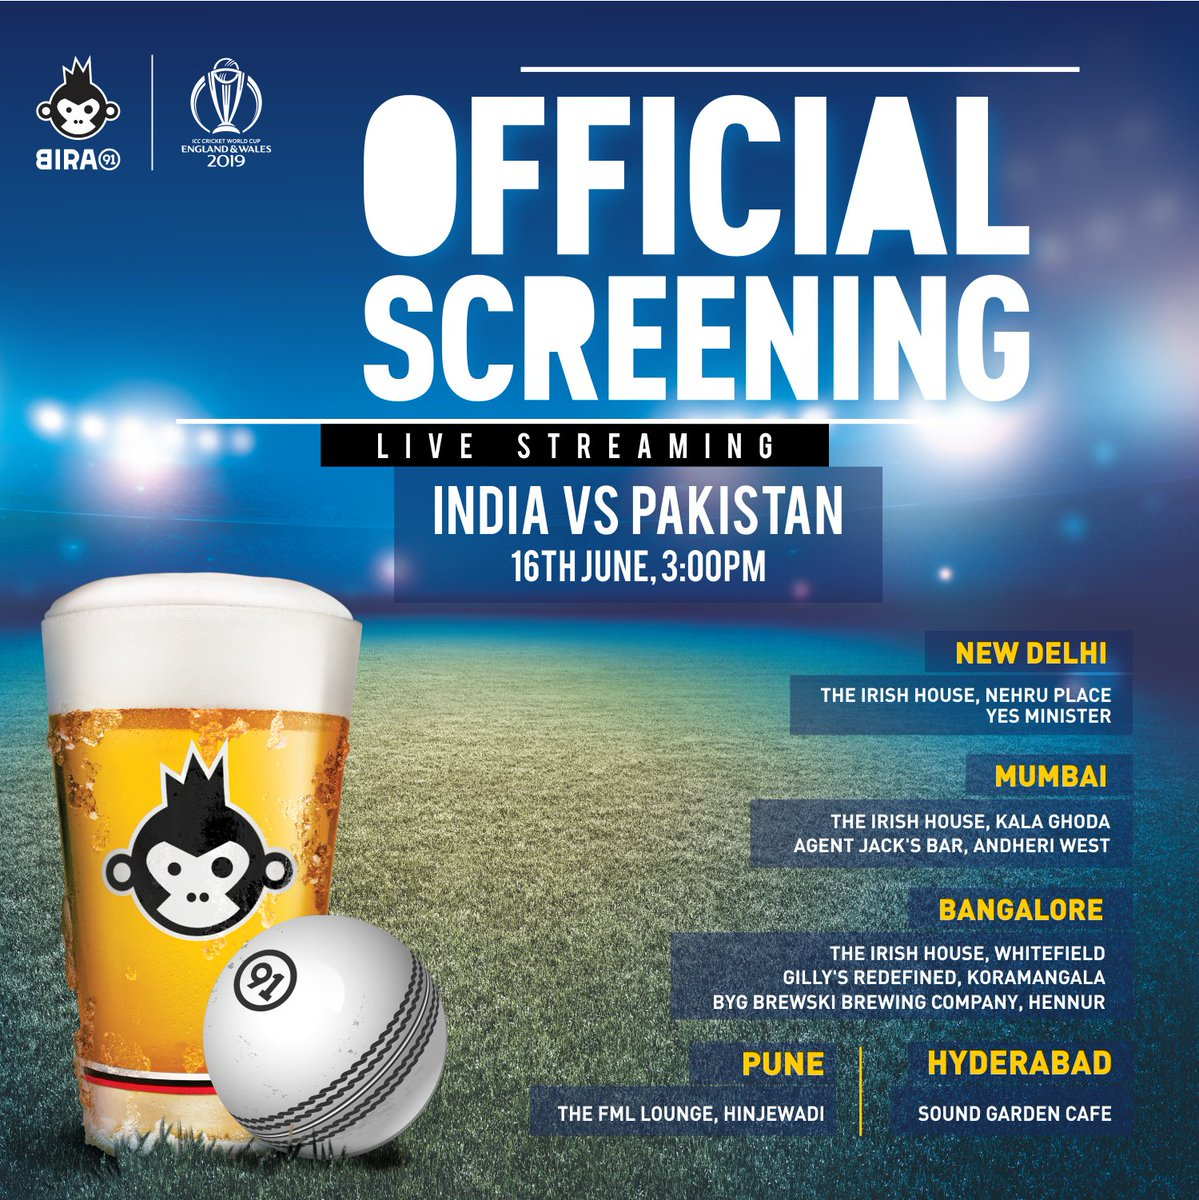 This is going to be one cracker of a game! Catch the Bira 91 x ICC Cricket World Cup Official Screening: India VS Pakistan on 16th June.🍻#Bira91 #CWC19 #IndVsPak @theirishhousein @YesMinisterDEL @Big_Brewsky @SoundGardenHyd @agent_jacksbar #GillysRedefined